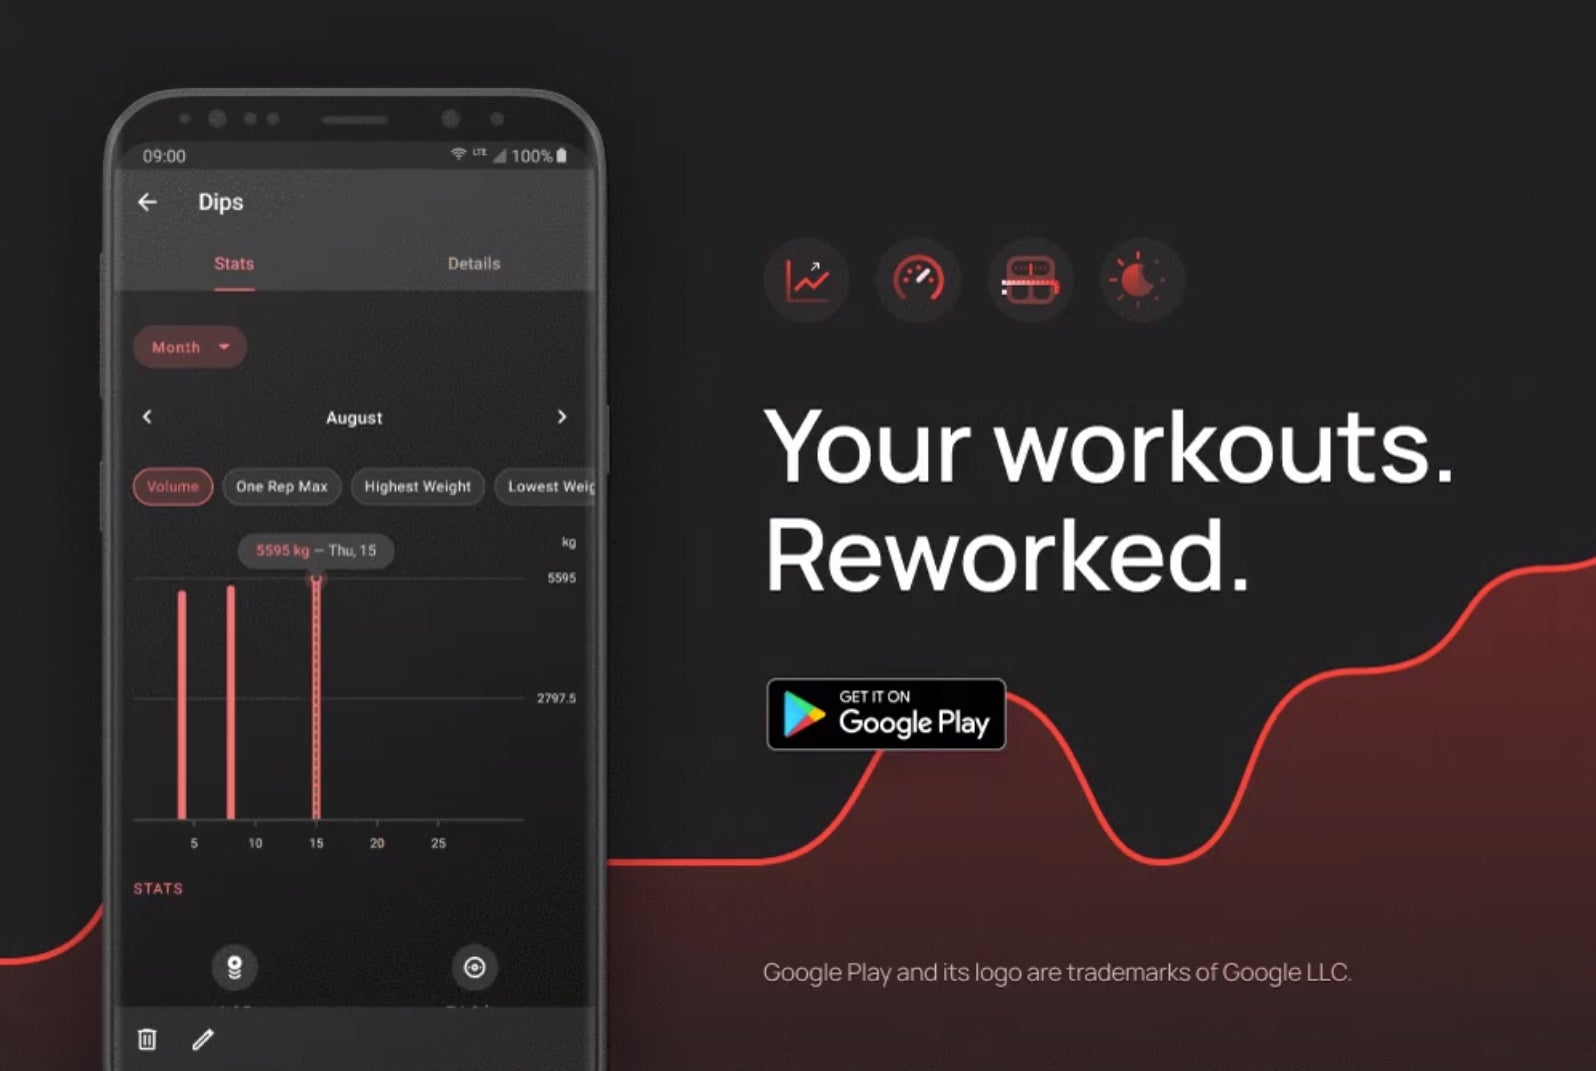 """LiftApp """"width ="""" 1596 """"height ="""" 1071 """"class ="""" alignnone size-full wp-image-381276 """"srcset ="""" https://www.funzen.net/wp-content/uploads/2019/10/1570964825_775_The-best-new-games-and-apps-for-Android-October-2019.jpg 1596w, https: / /andro4all.com/files/2019/08/LiftApp-400x268.jpg 400w, https://andro4all.com/files/2019/08/LiftApp-768x515.jpg 768w, https://andro4all.com/files/2019 /08/LiftApp-700x470.jpg 700w, https://andro4all.com/files/2019/08/LiftApp-220x148.jpg 220w """"sizes ="""" (max-width: 1596px) 100vw, 1596px """"/></p><p>If you are looking for one <strong>good application to get fit and you are also a lover of good design</strong>, I fear that <strong>LiftApp is your best option</strong>. Although the app is at an early stage of its development, it is fully functional and integrates interesting functions such as the possibility of <strong>create backup copies in Google Drive</strong>, manage our routines and training, add exercises beyond the dozens of activities that already includes and much more, all with an exquisite appearance based on the Material Design lines.</p><h4>Vivaldi Browser Beta</h4><p><img src="""